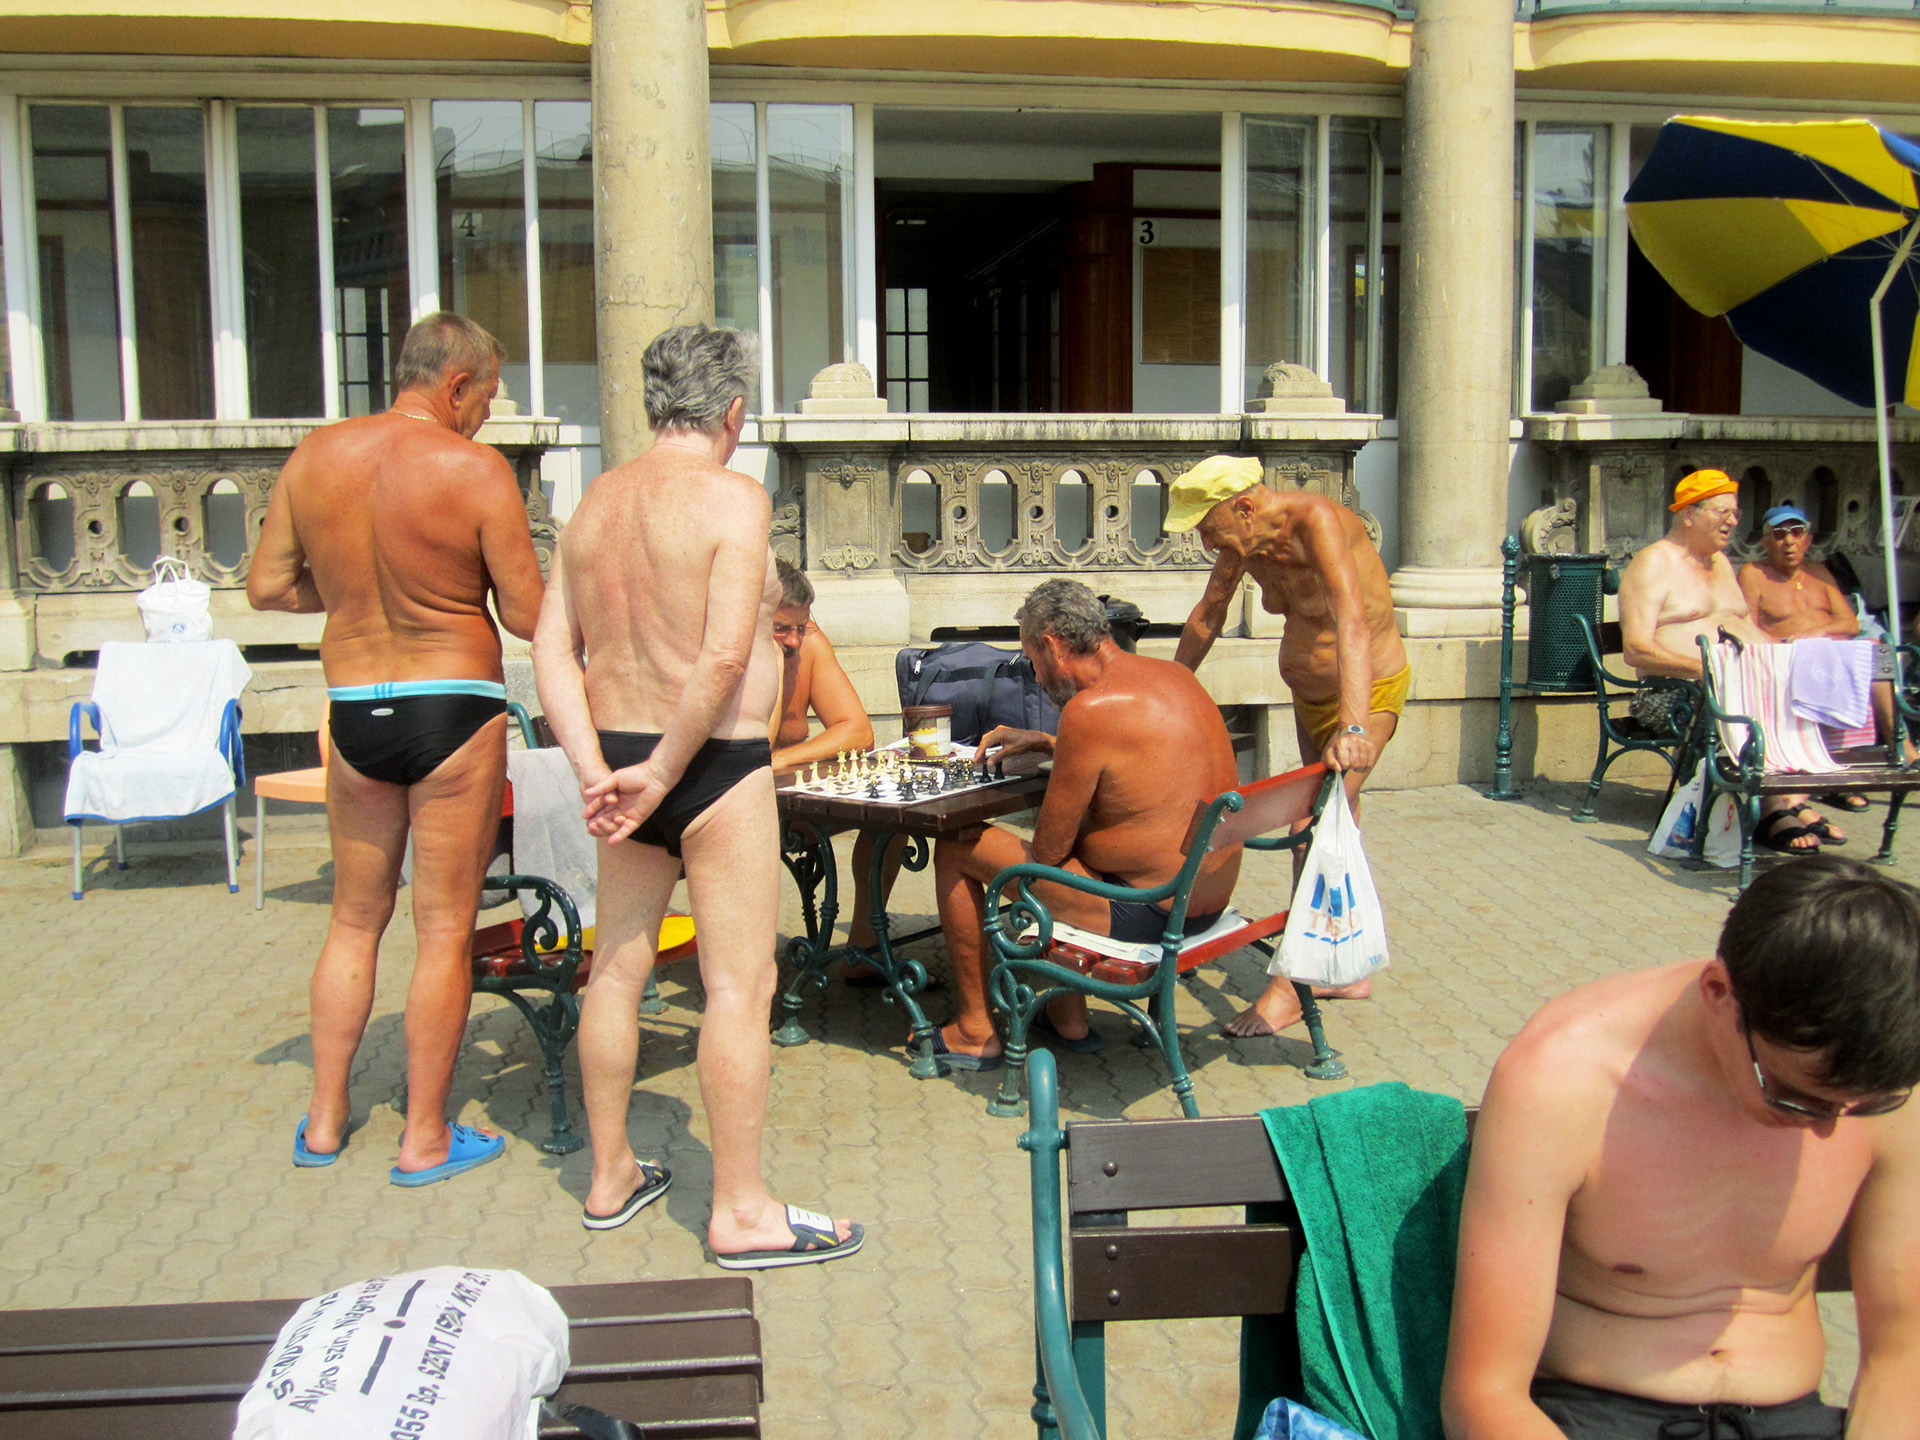 Some locals playing chess at the baths.